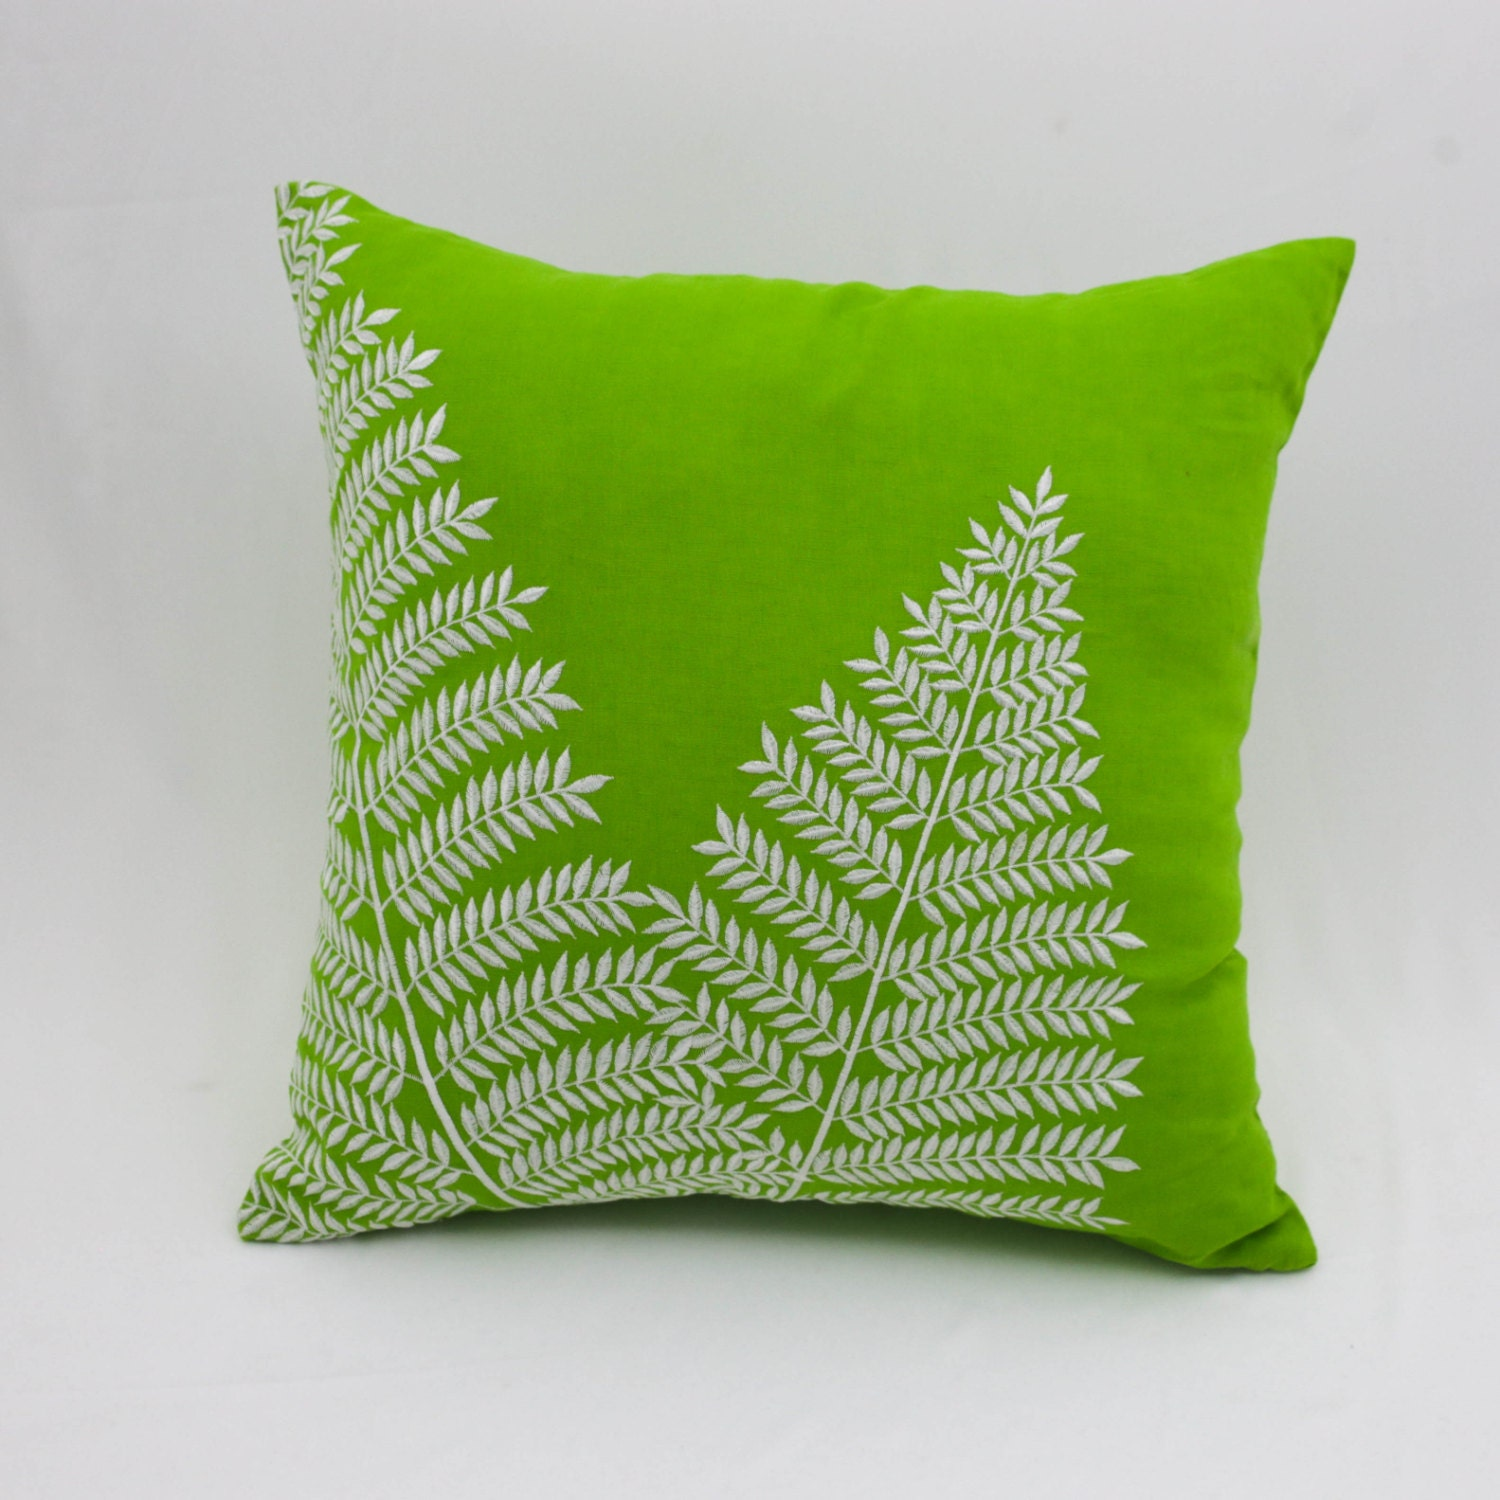 Decorative Pillows Linen : Fern Throw Pillow Cover Decorative Pillow Green Linen Off